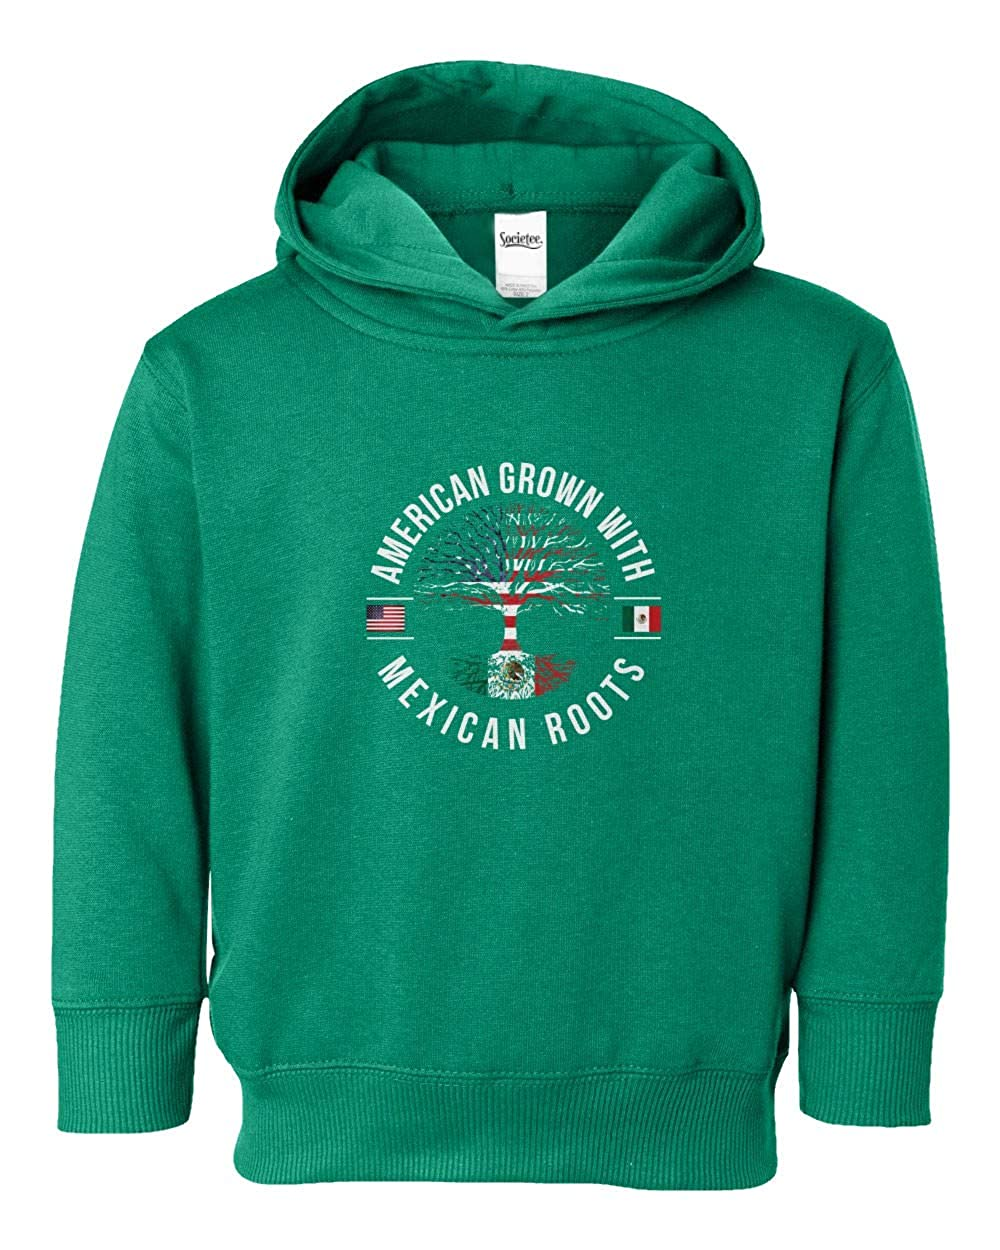 Societee American Grown with Mexican Roots Youth /& Toddler Hoodie Sweatshirt